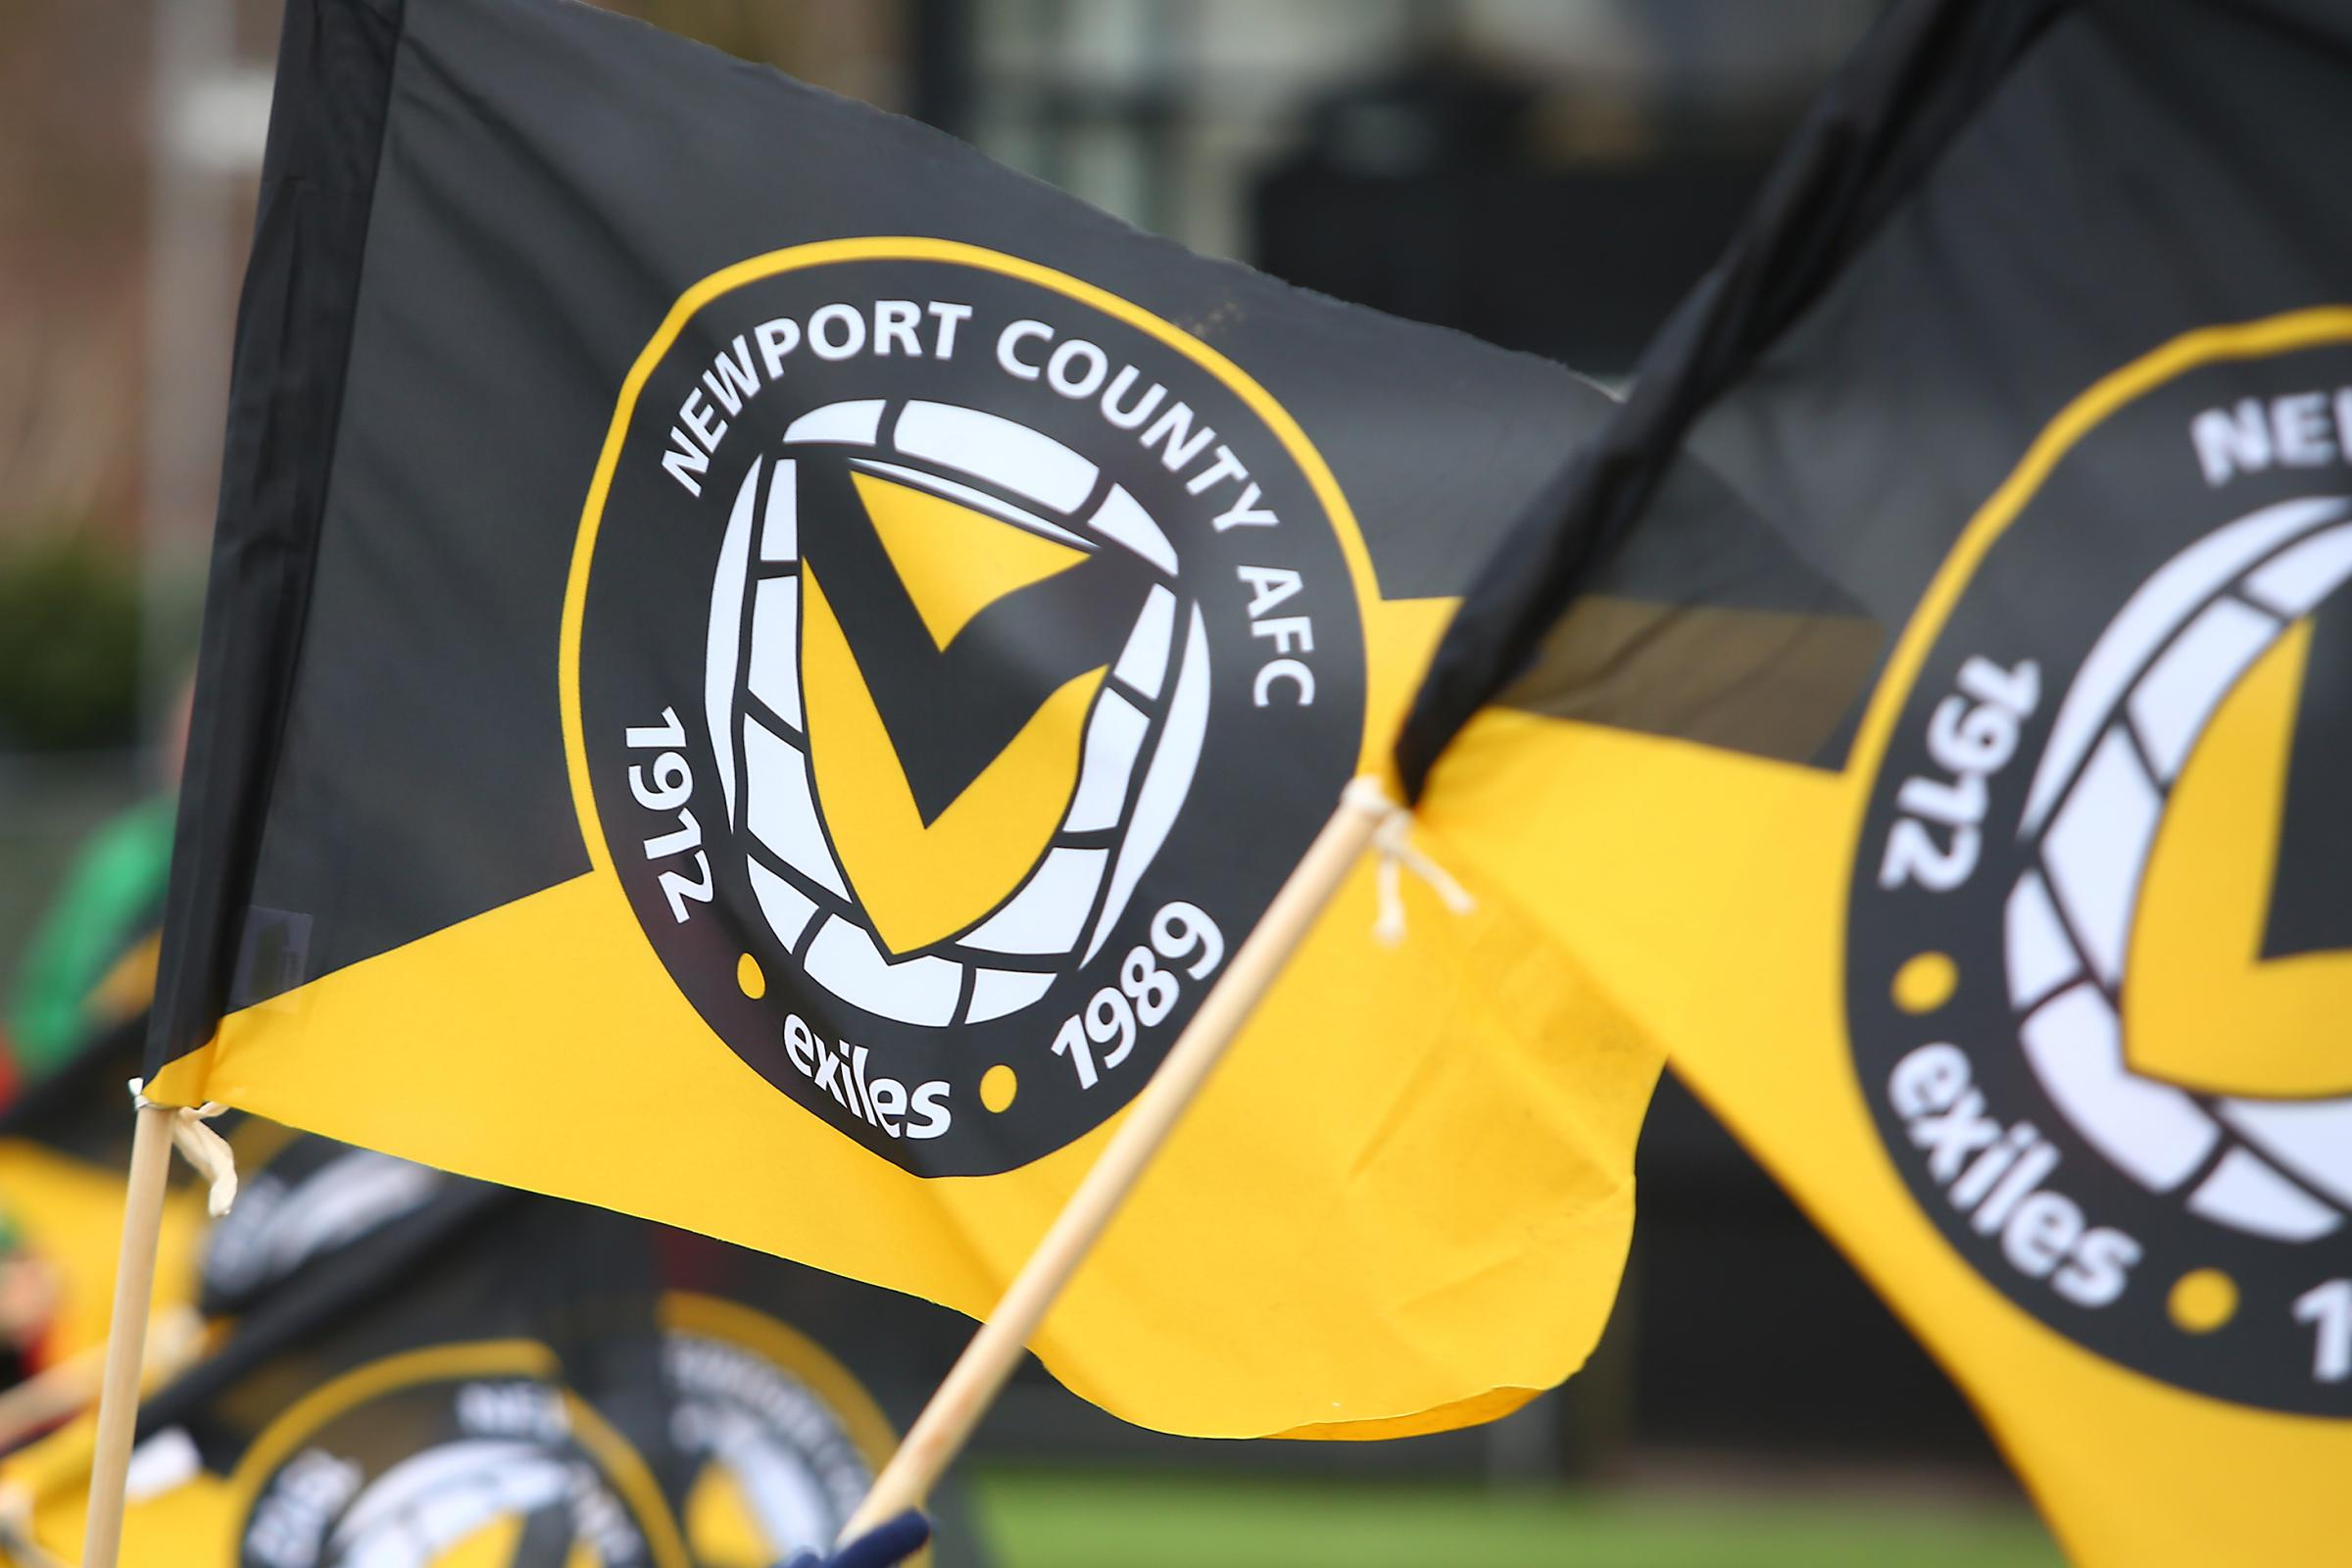 CHANGE: Newport County will now take on Championship club Bristol City behind closed doors in Bristol next week